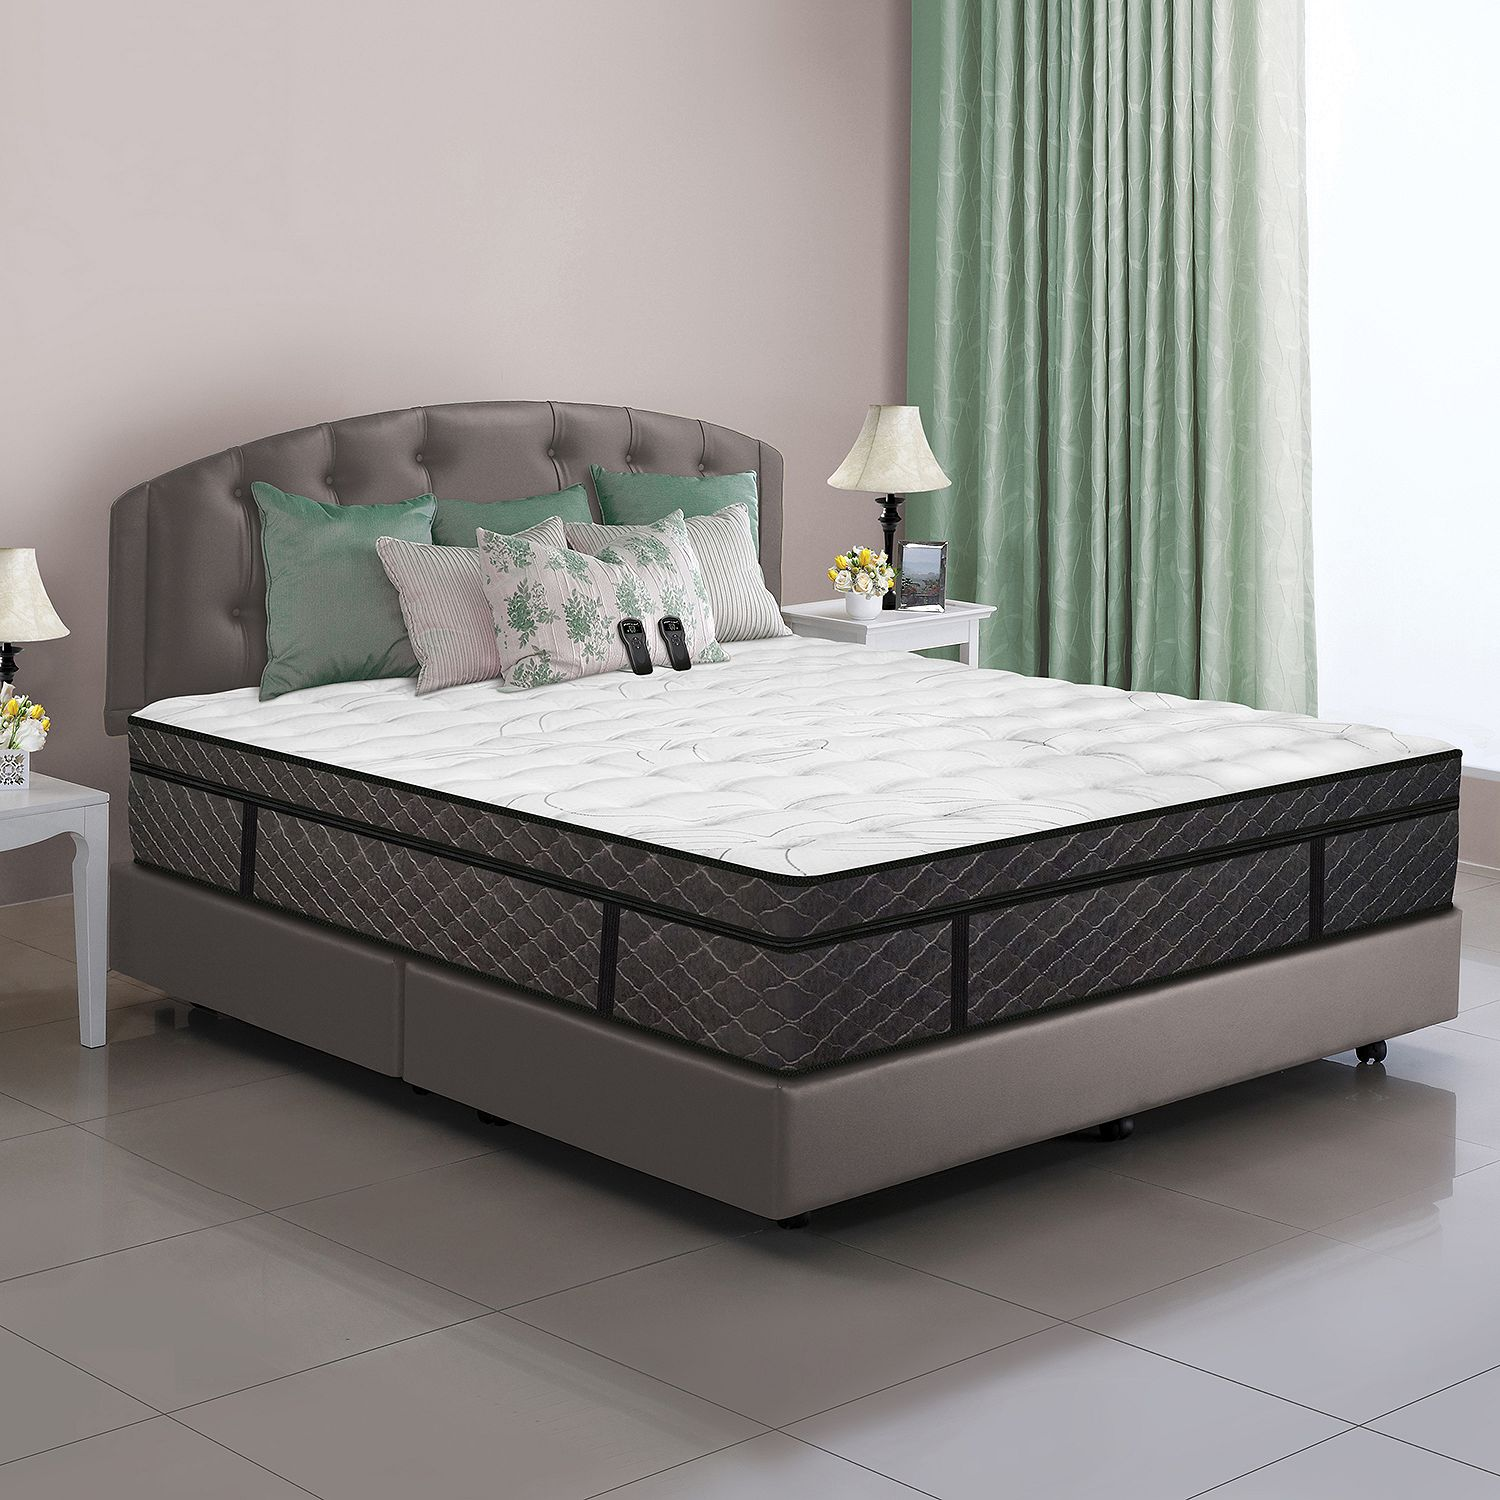 Simple Most of the mattress is made of foam but the highest level the one you sleep on has air cavities that proper you up